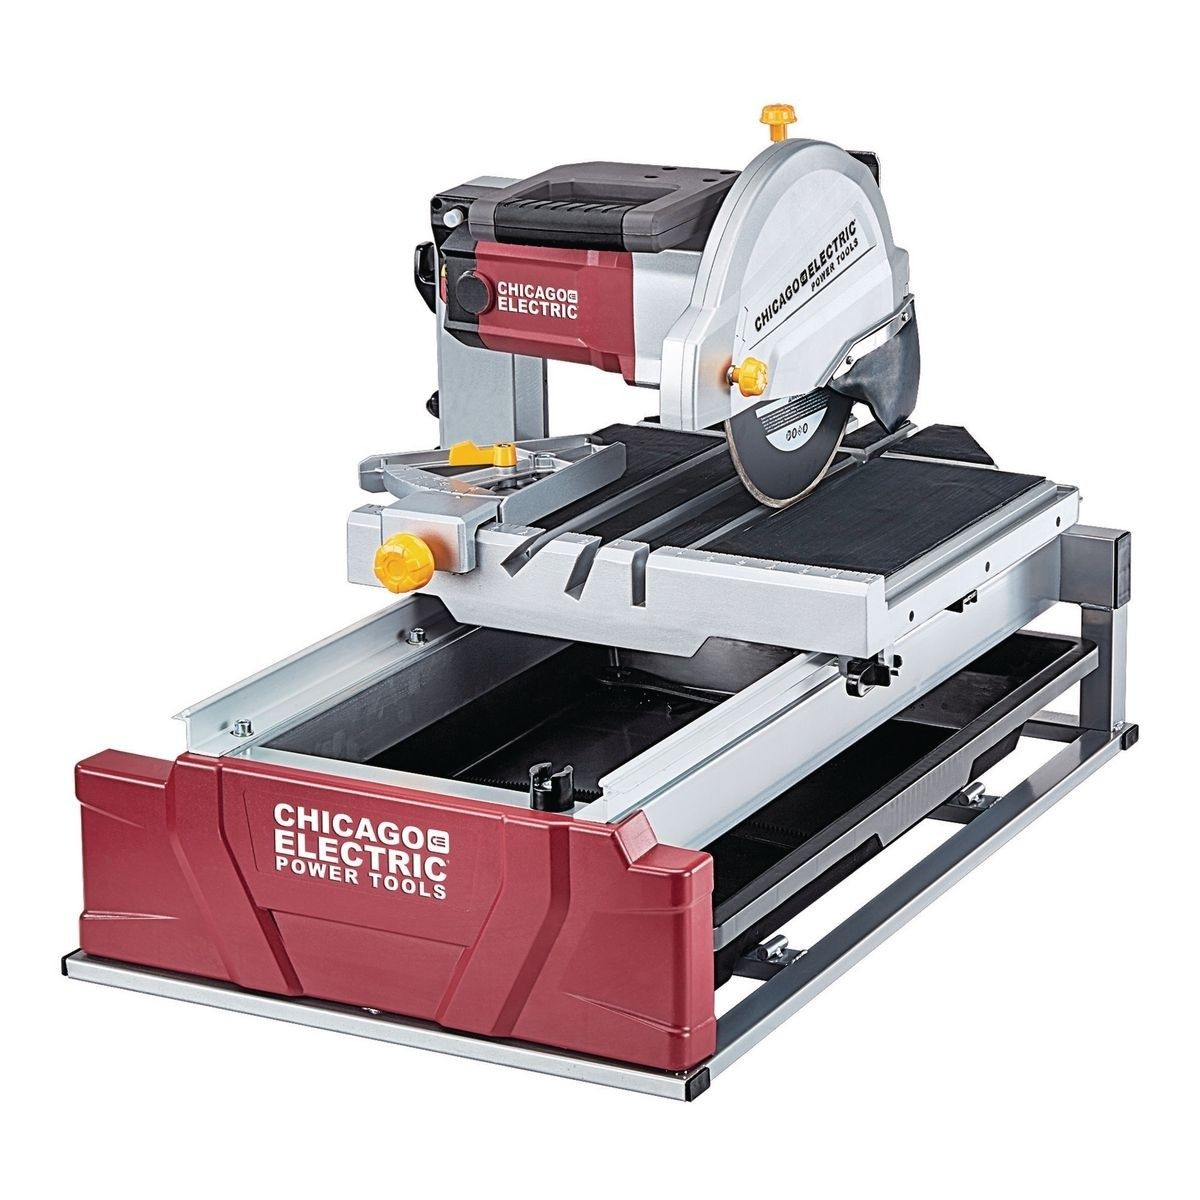 Buy This 2 5 Hp 10 In Industrial Tile Brick Saw For Only 229 99 Brick Saw Industrial Tile Harbor Freight Tools